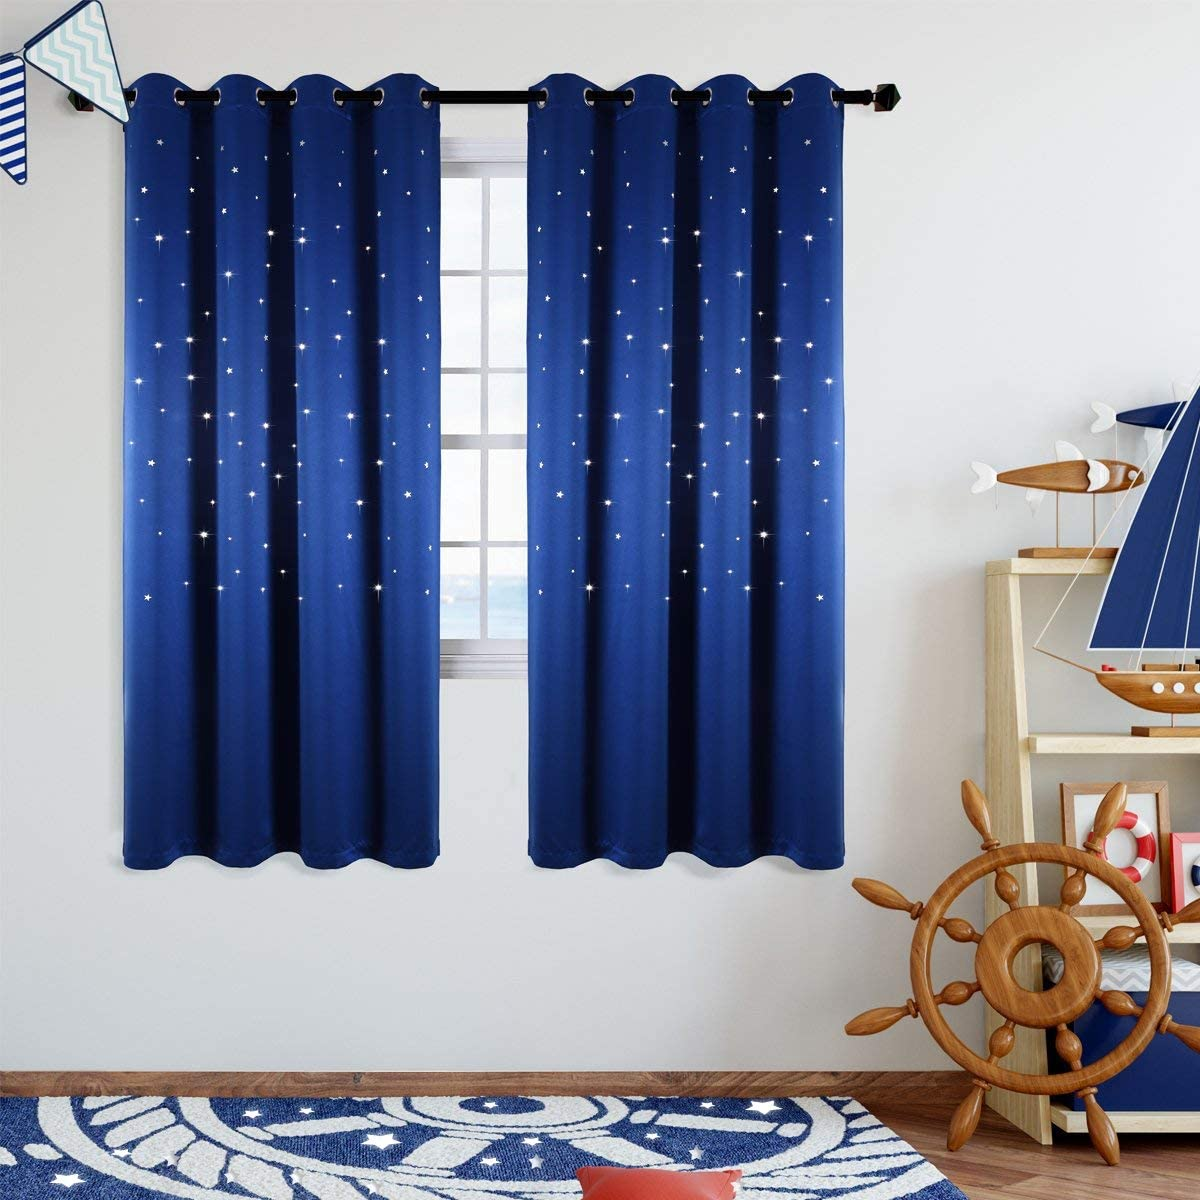 Anjee Blackout Star Curtains for Ranking Gifts TOP17 Kids 2 Room Cutout Panels Stars